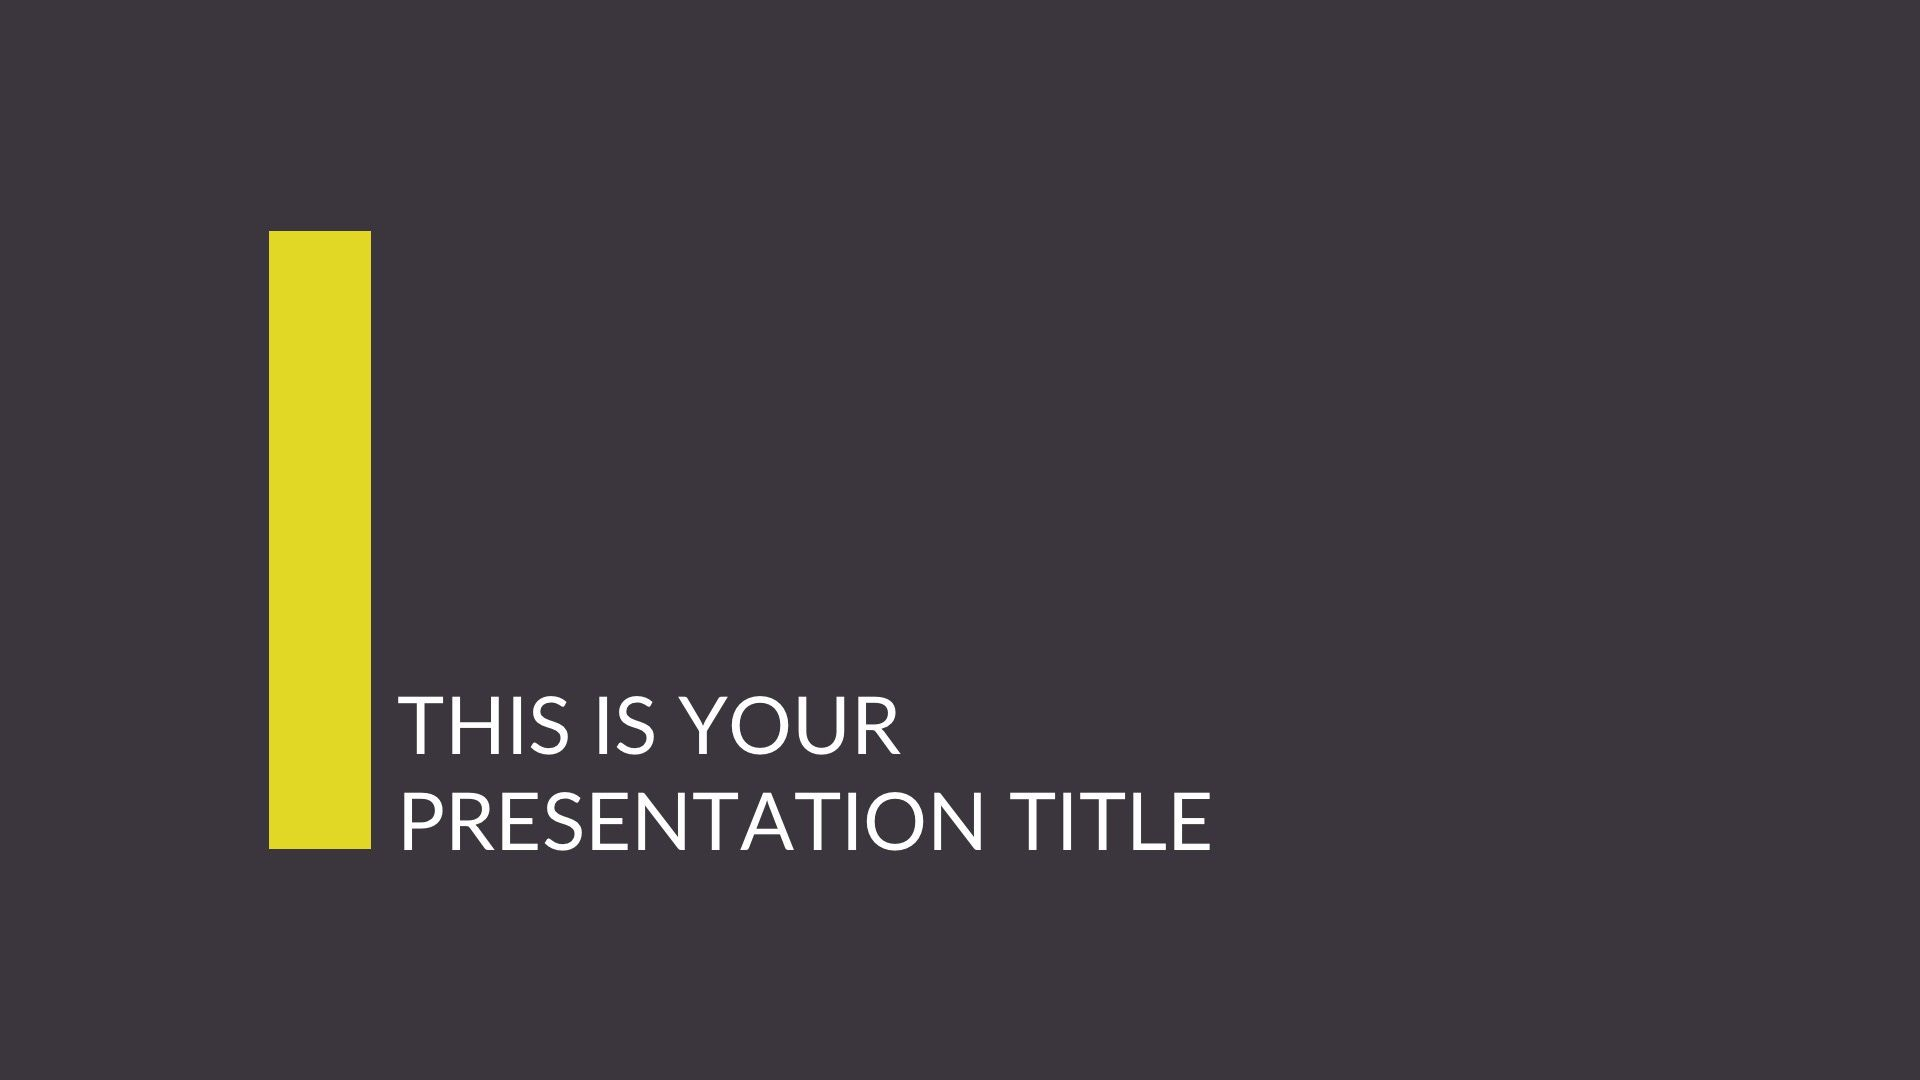 000 Exceptional Google Power Point Template Idea  Free Ppt Powerpoint DownloadFull